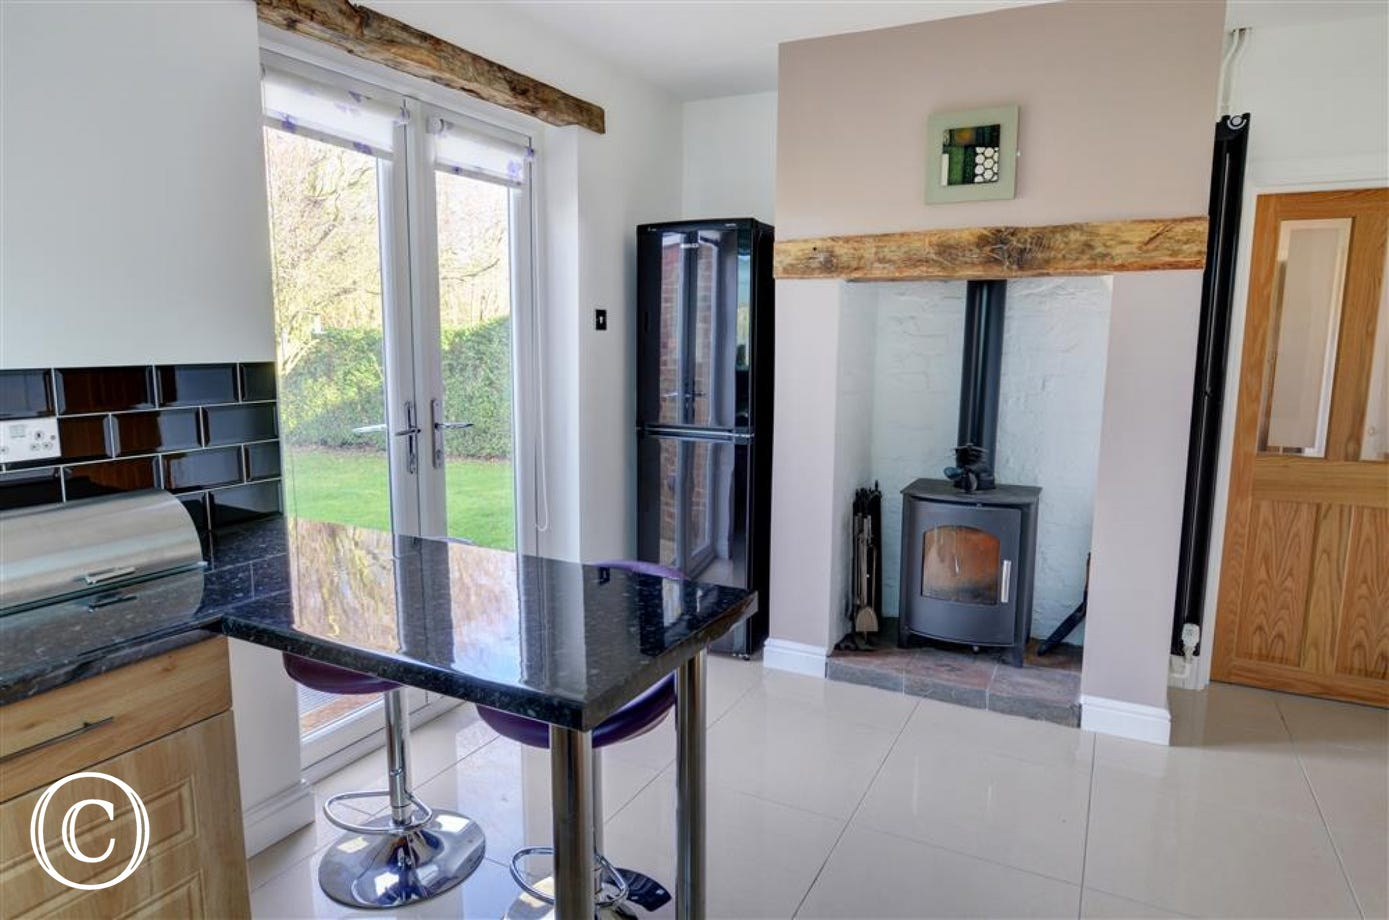 Another woodburner within the spacious kitchen